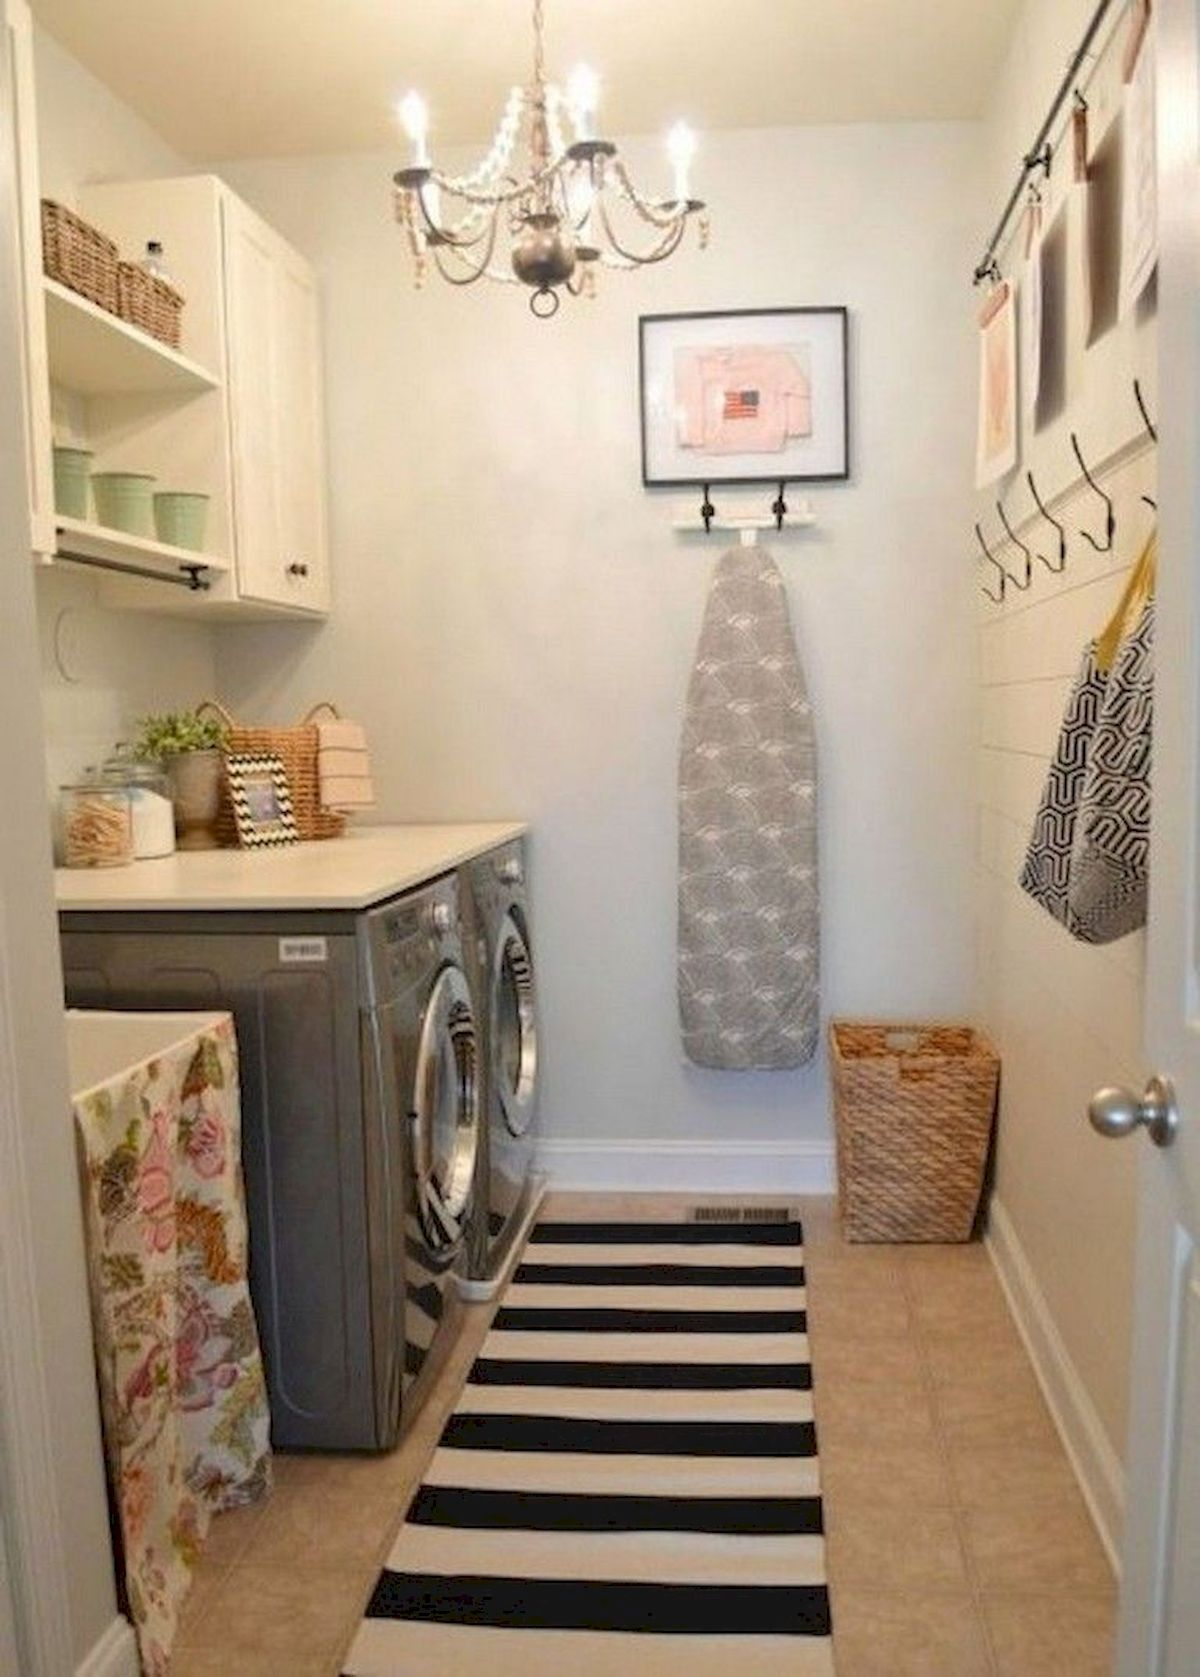 100 inspiring simple and awesome laundry room ideas diy on effectively laundry room decoration ideas easy ideas to inspire you id=67169